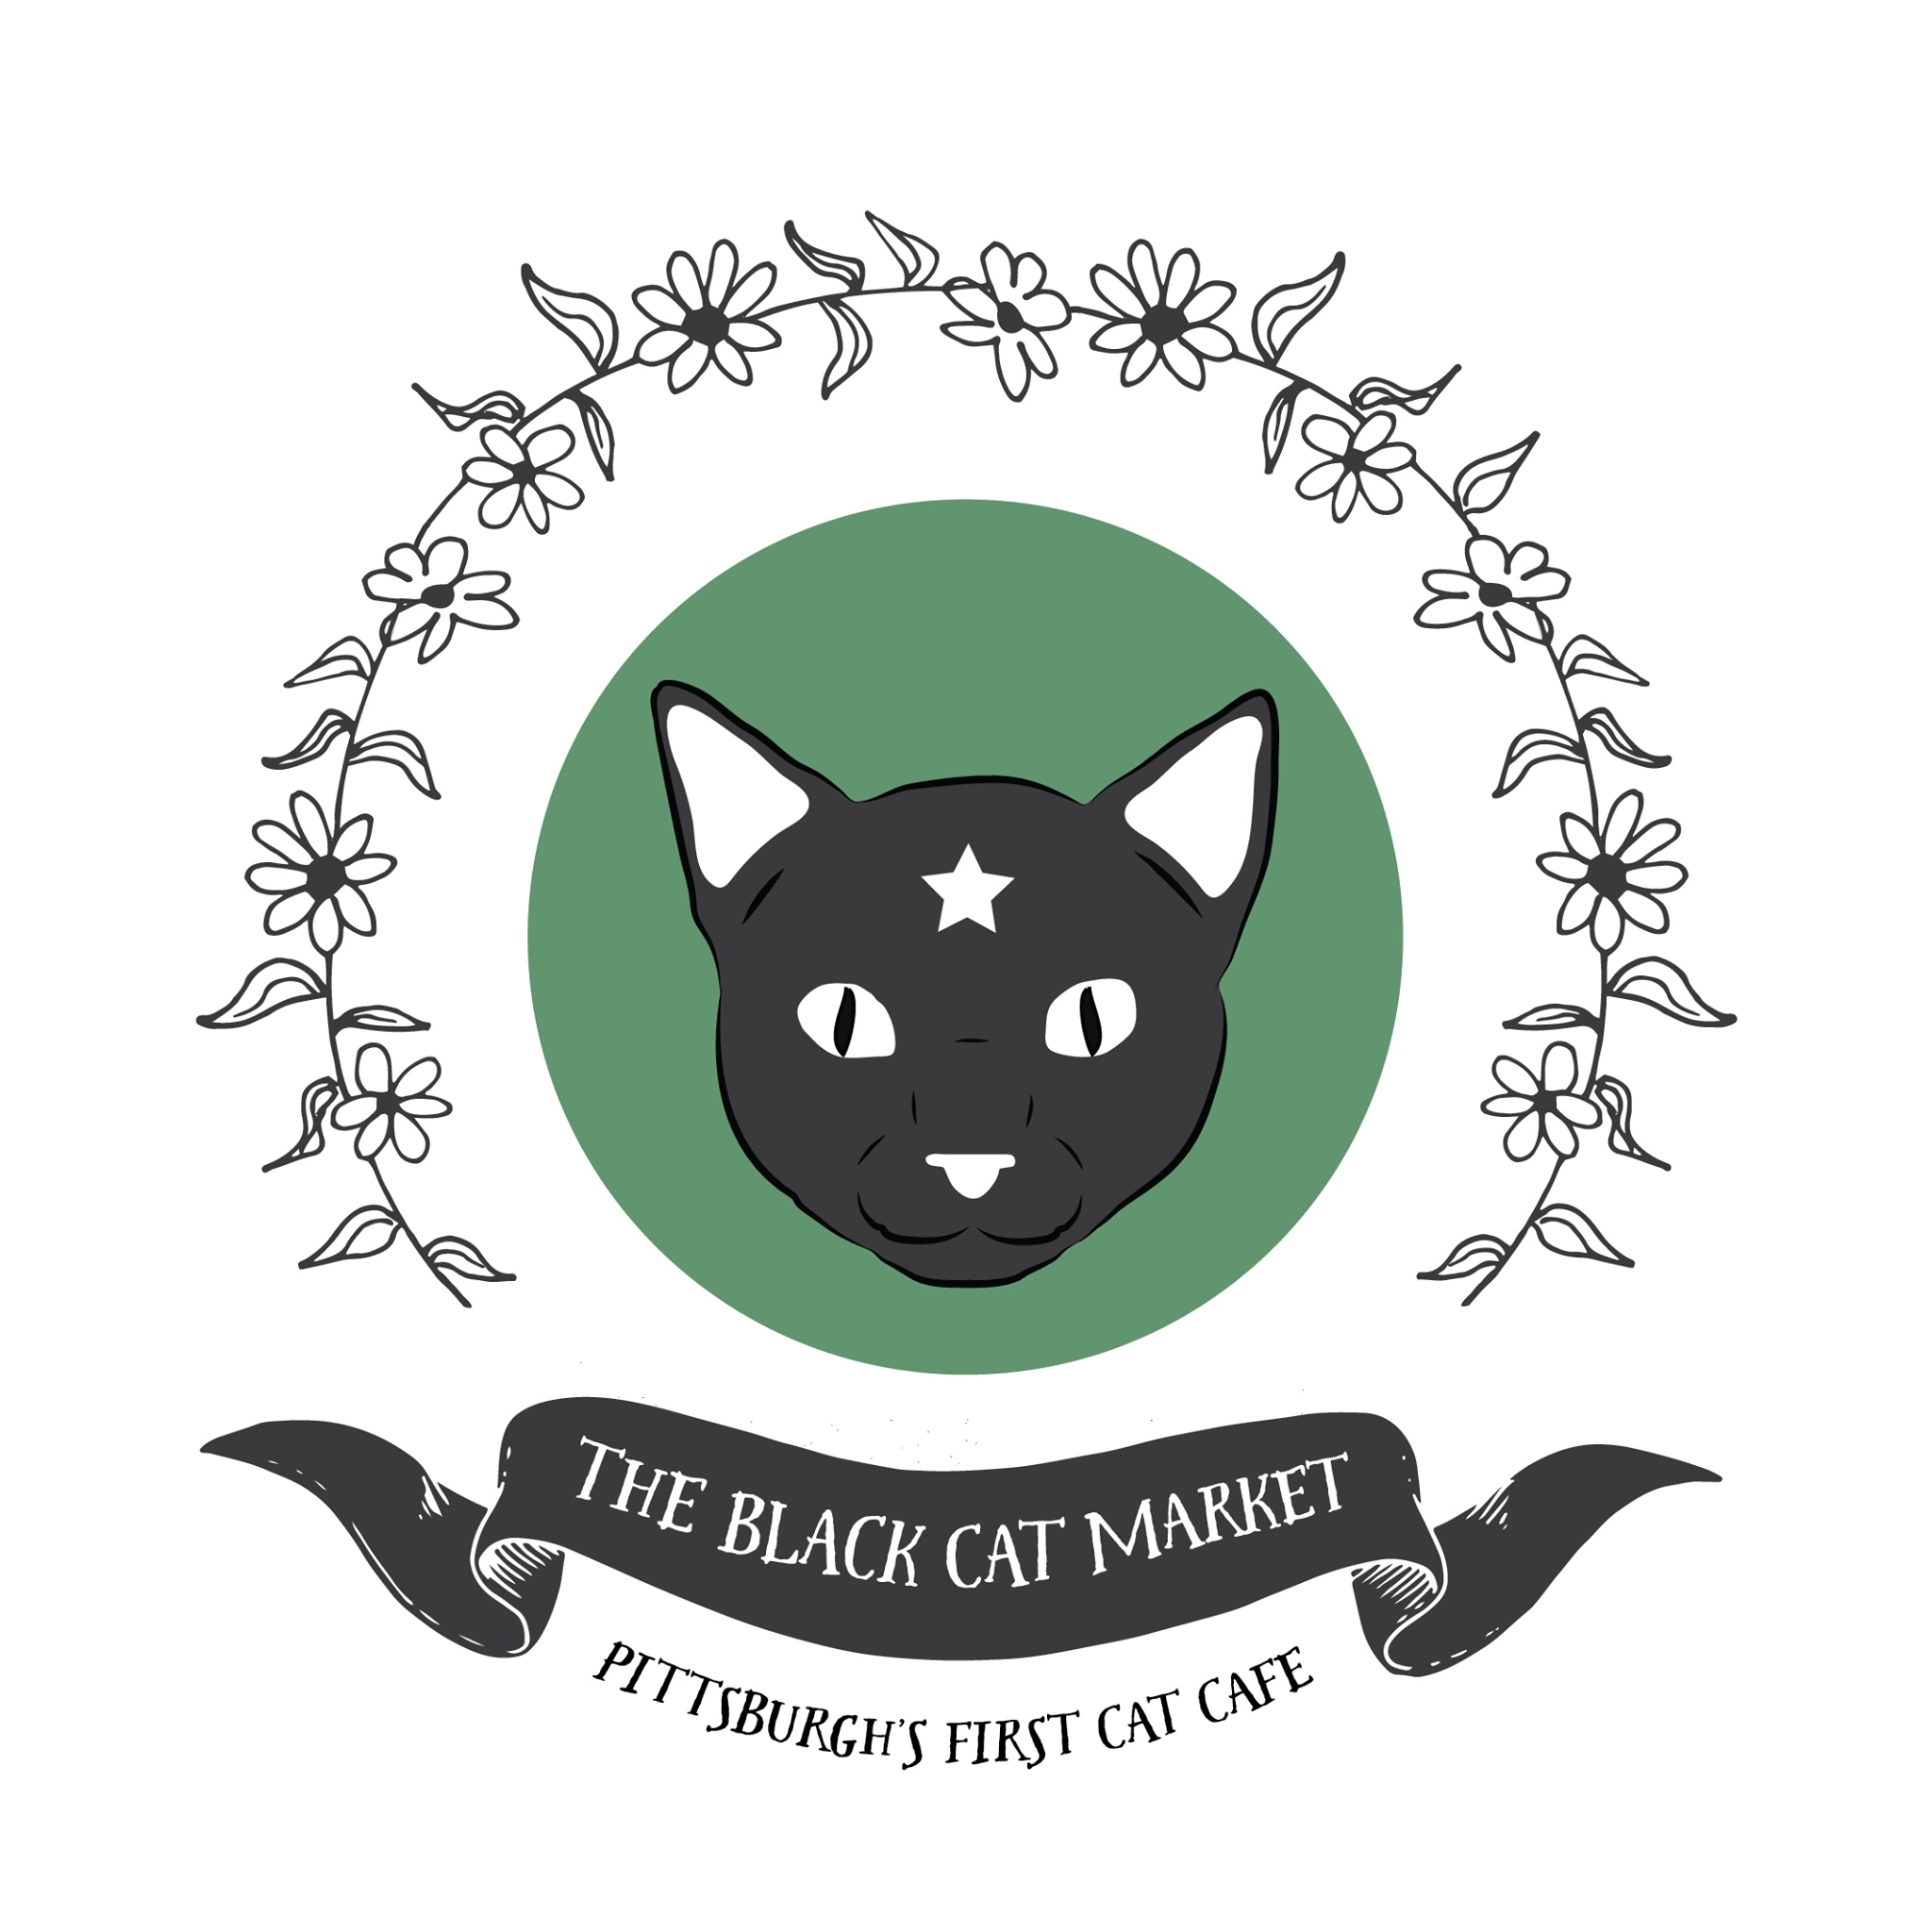 The black cat market